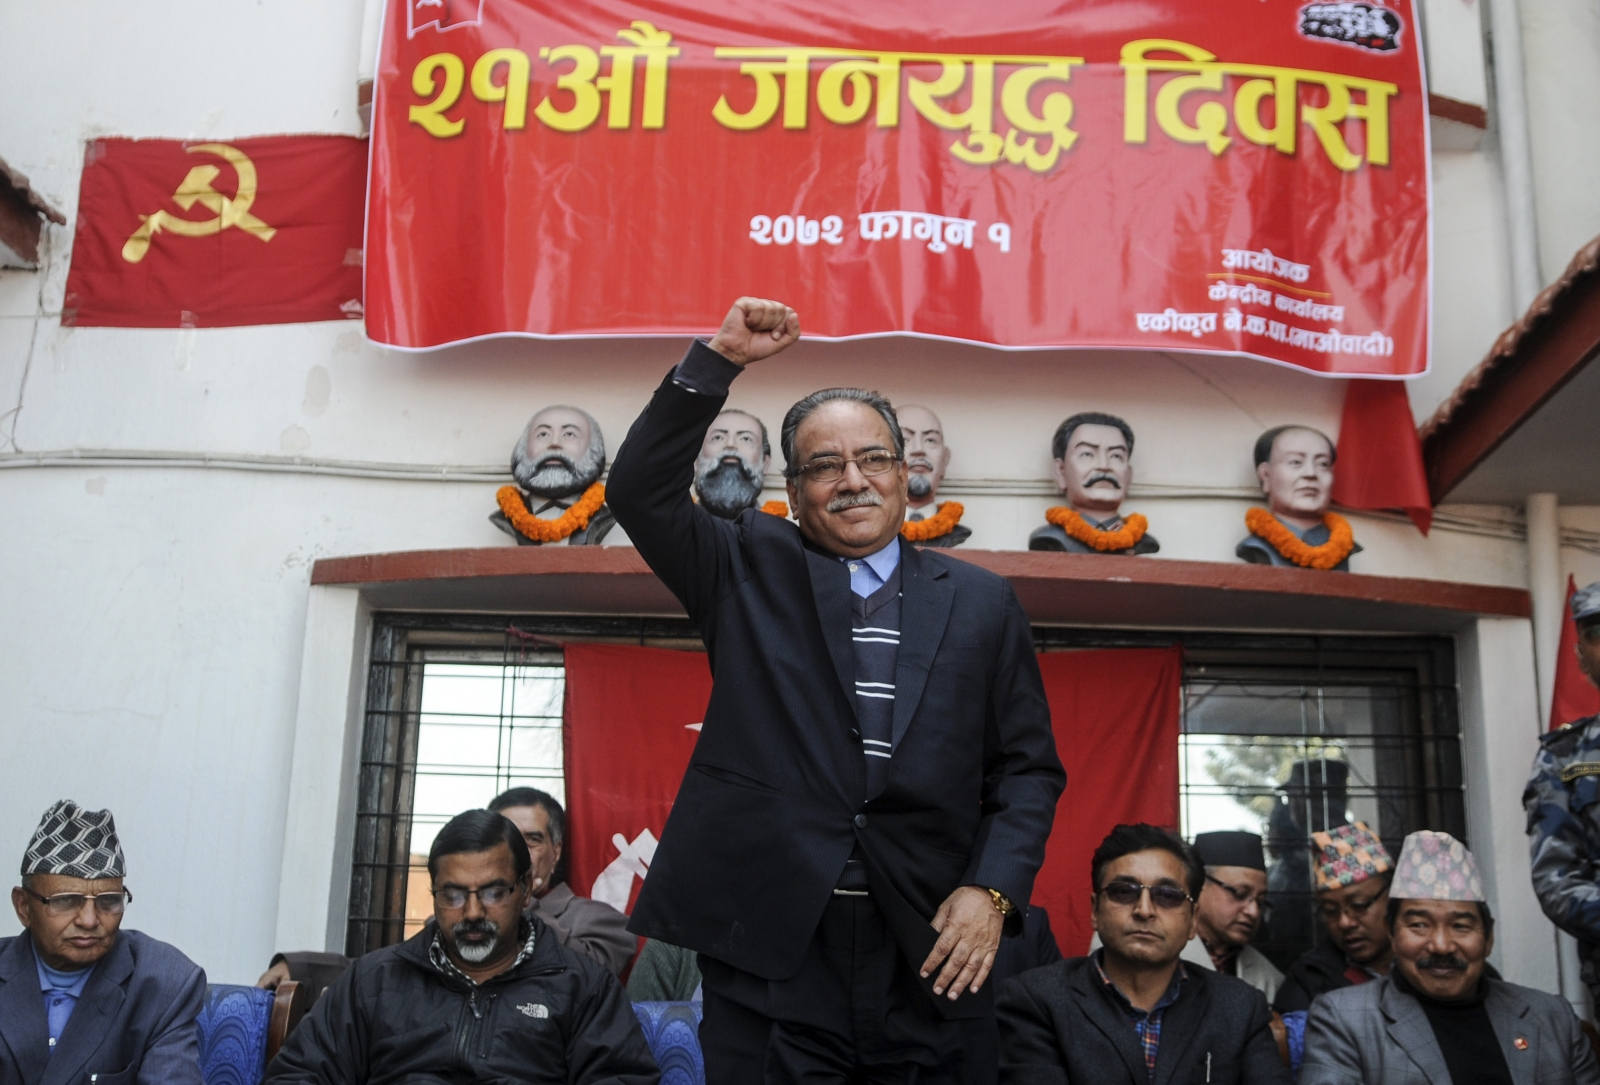 Prachanda - Communist leader